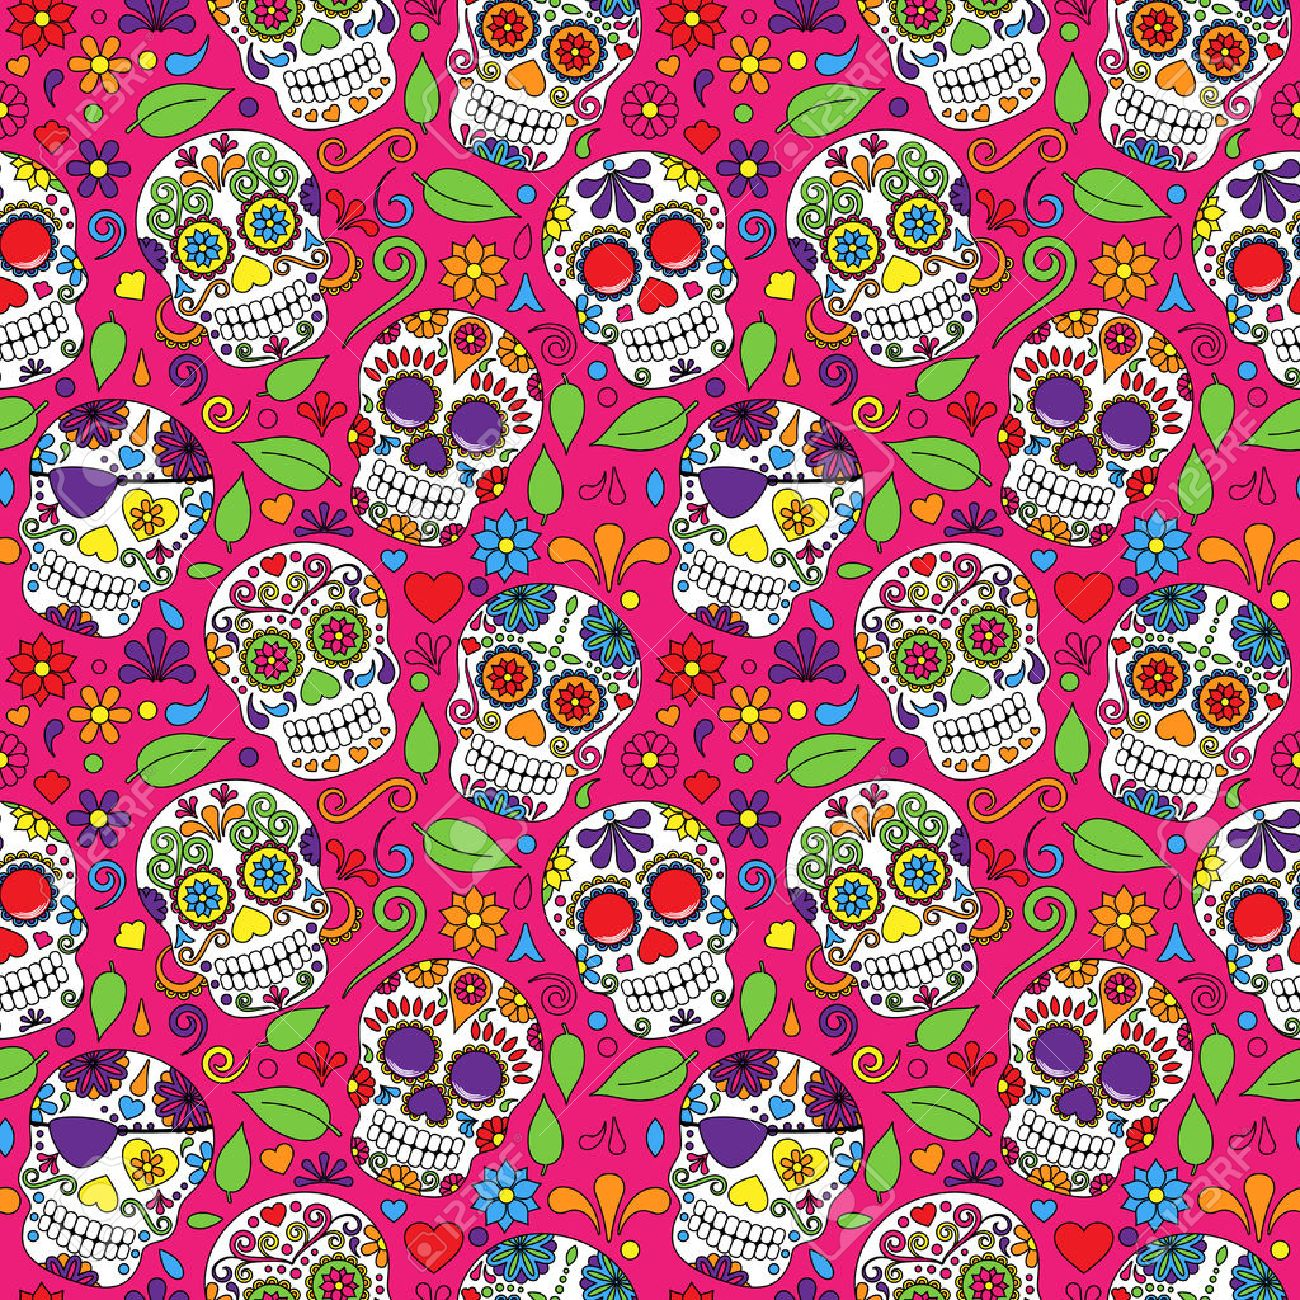 Day of the Dead Sugar Skull Seamless Vector Background - 36626876